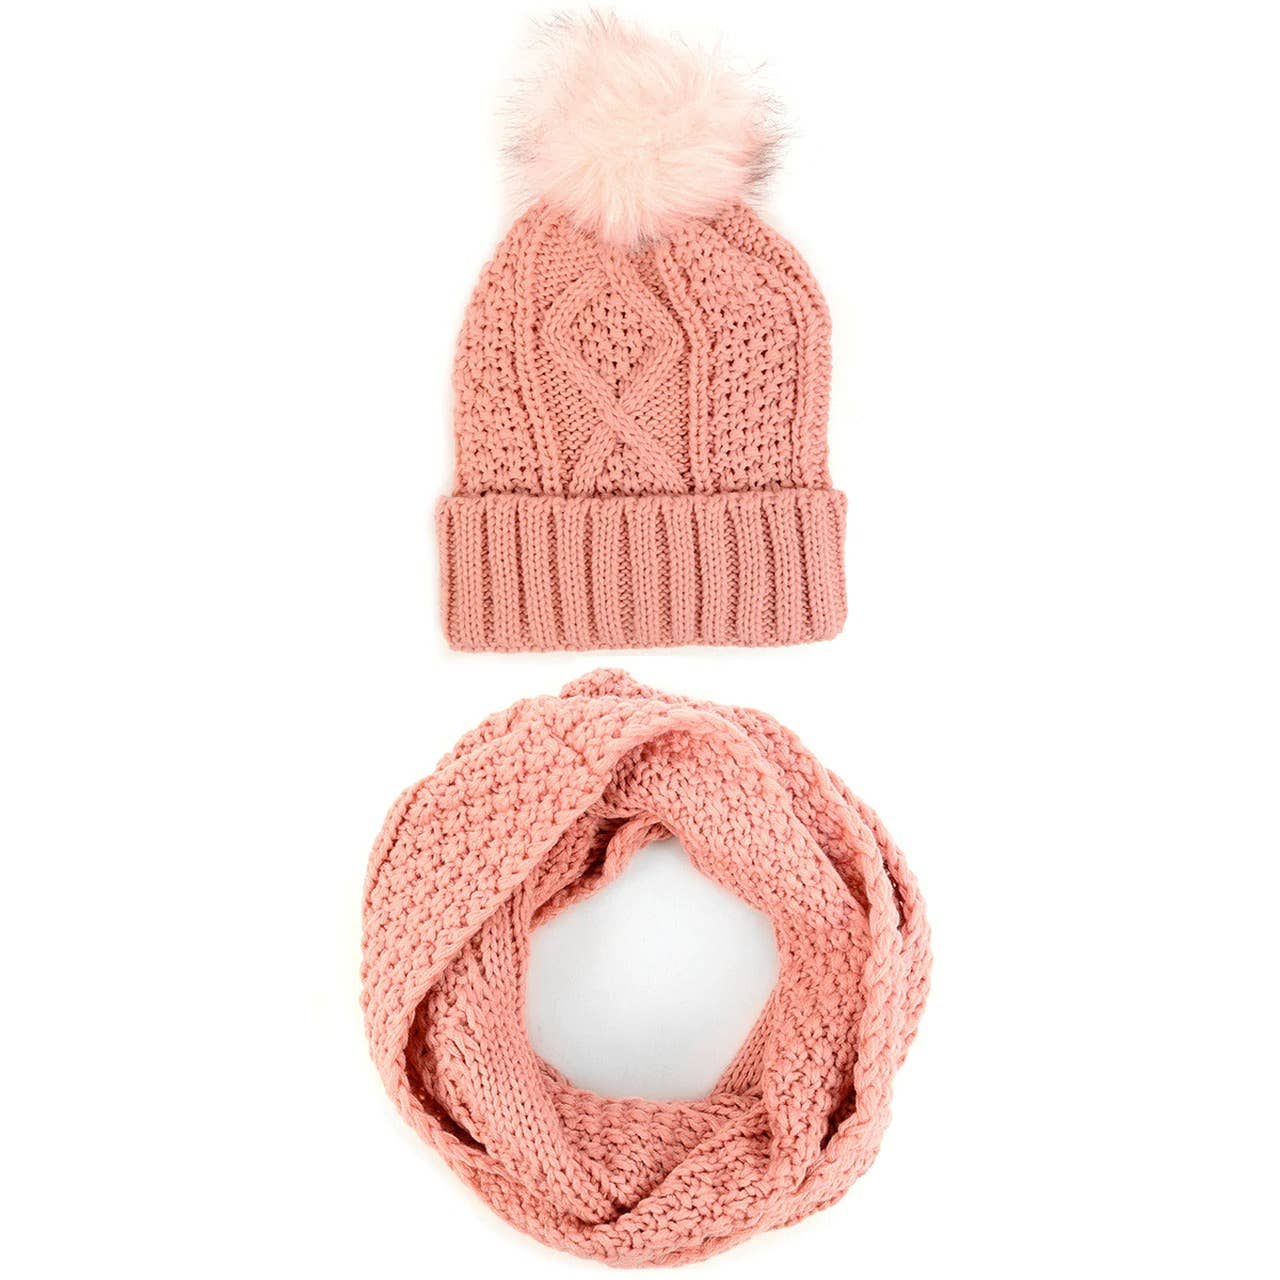 Women's 2pc Knit Hat & Infinity Scarf Winter Set